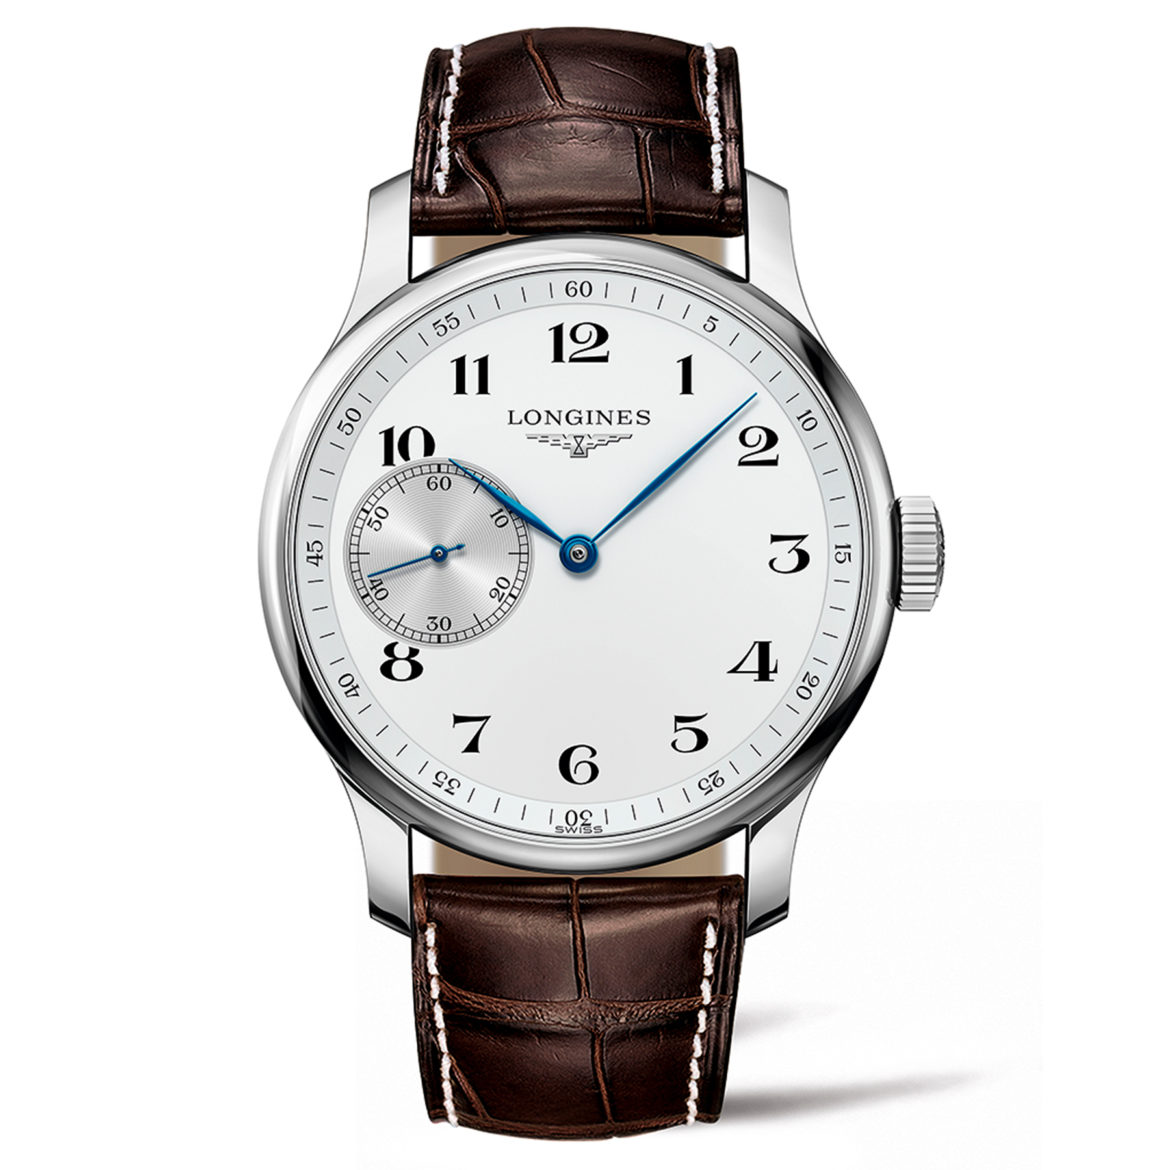 LONGINES</br/>The Longines Master Collection </br/>L28414183